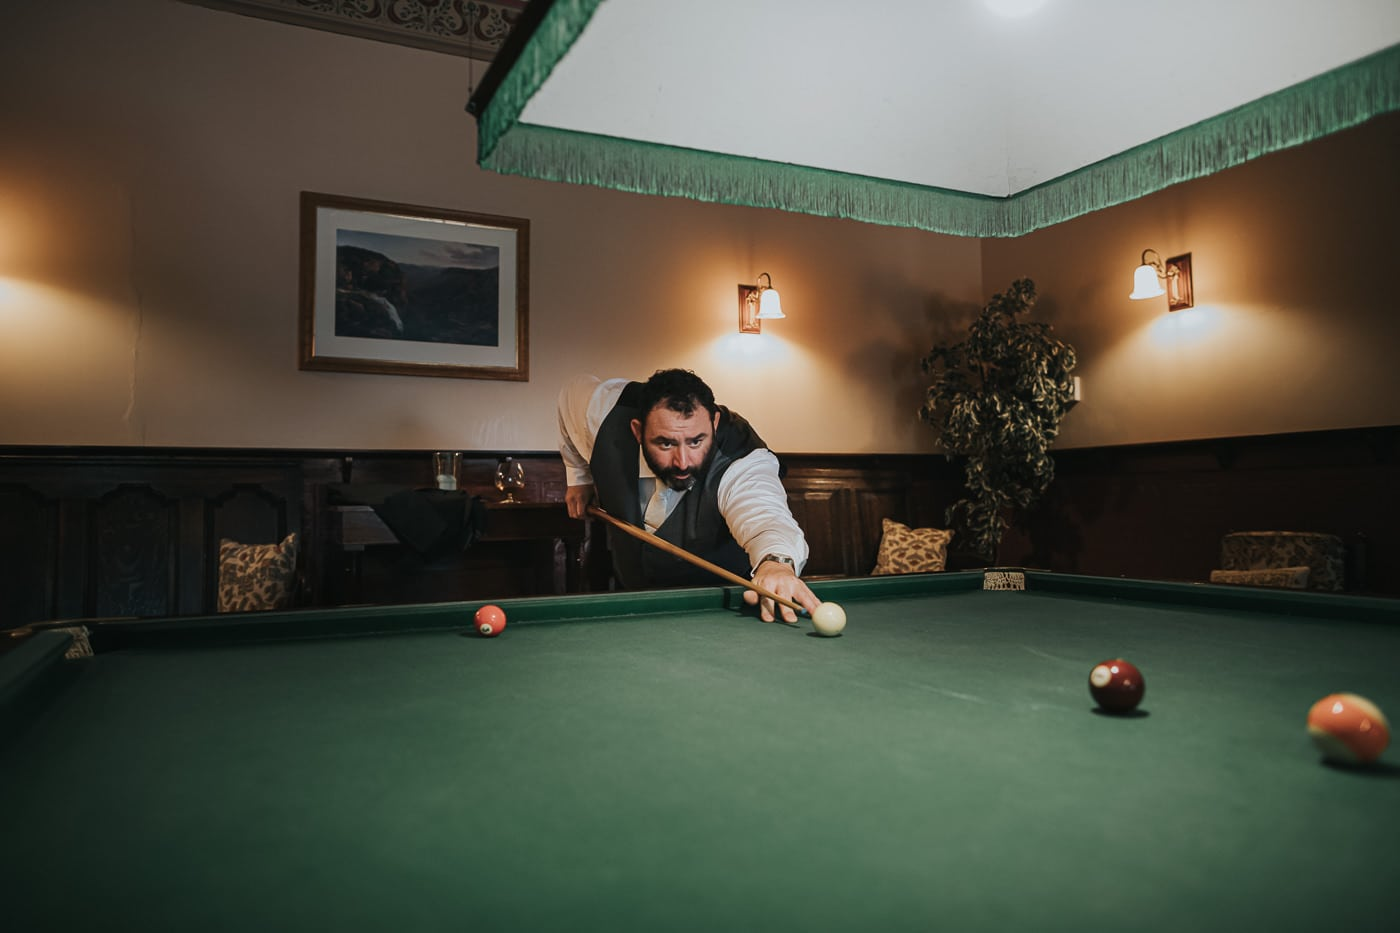 Groom playing pool billiard - before the ceremony - Photo by Flowerdale Estate Wedding Photographer